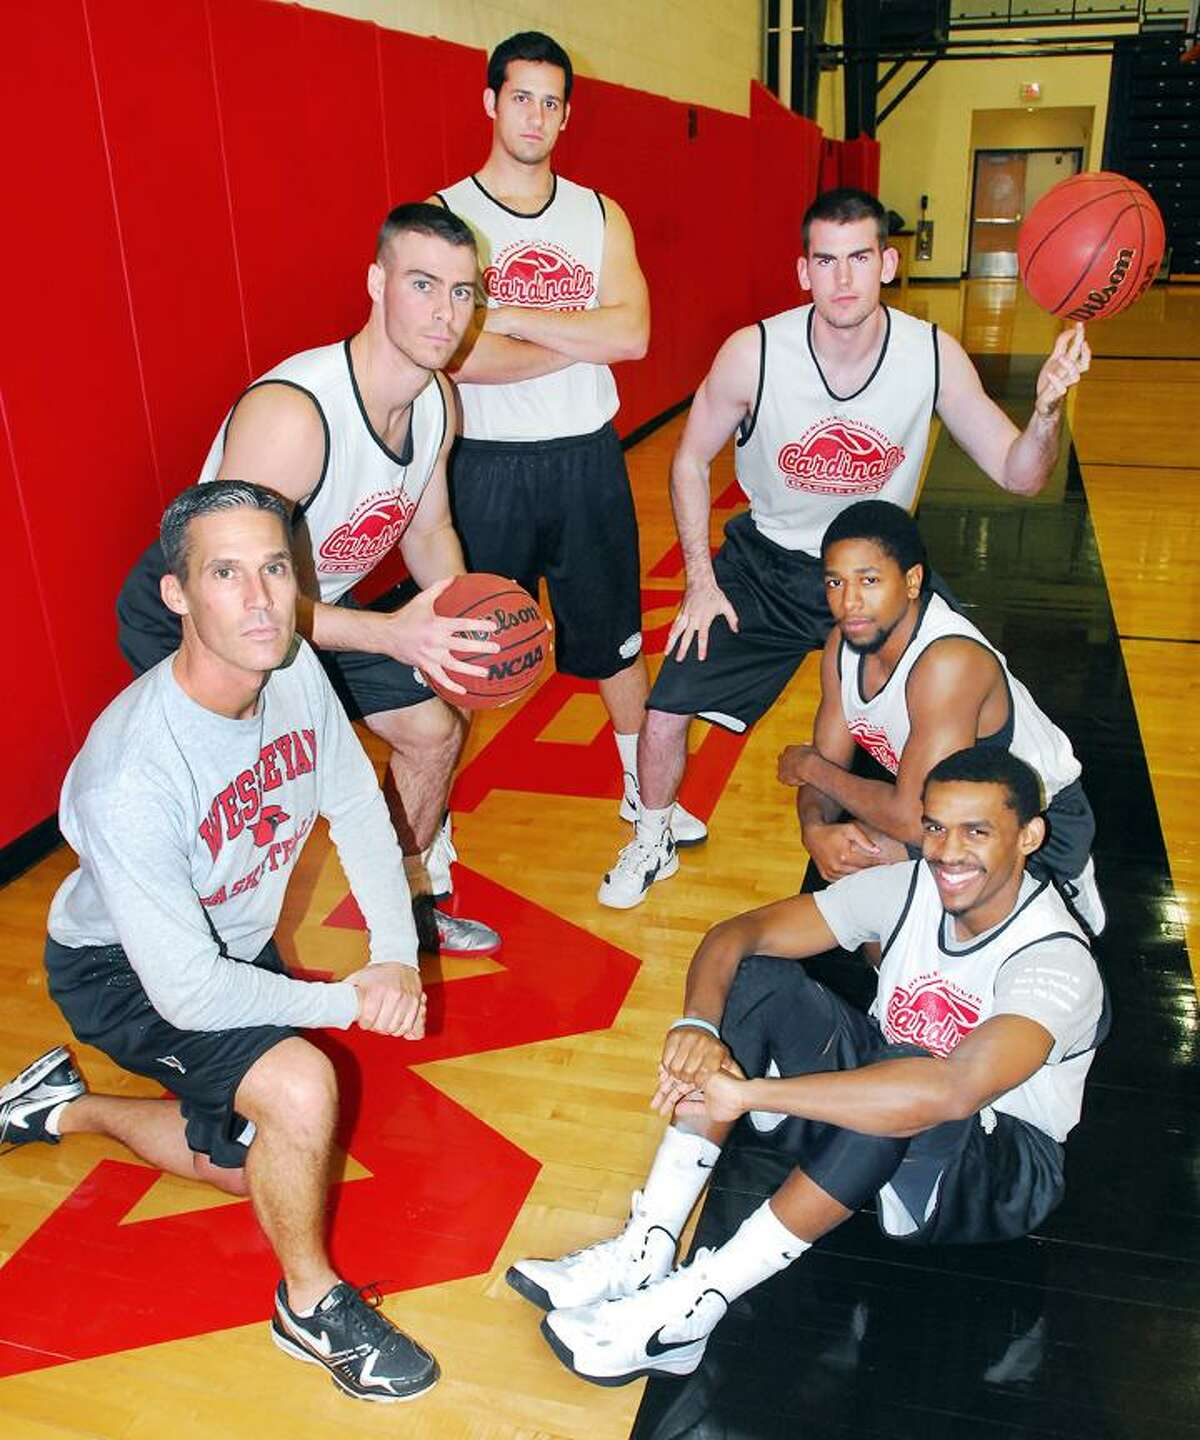 Catherine Avalone/The Middletown Press Wesleyan men's basketball coach Joe Reilly, left, and senior captains (clockwise from the left) Mike Callaghan, Matt Hogan, Greg St. Jean, Derick Beresford and Shasha Brown. The five seniors are all members of Reilly's first recruiting class.